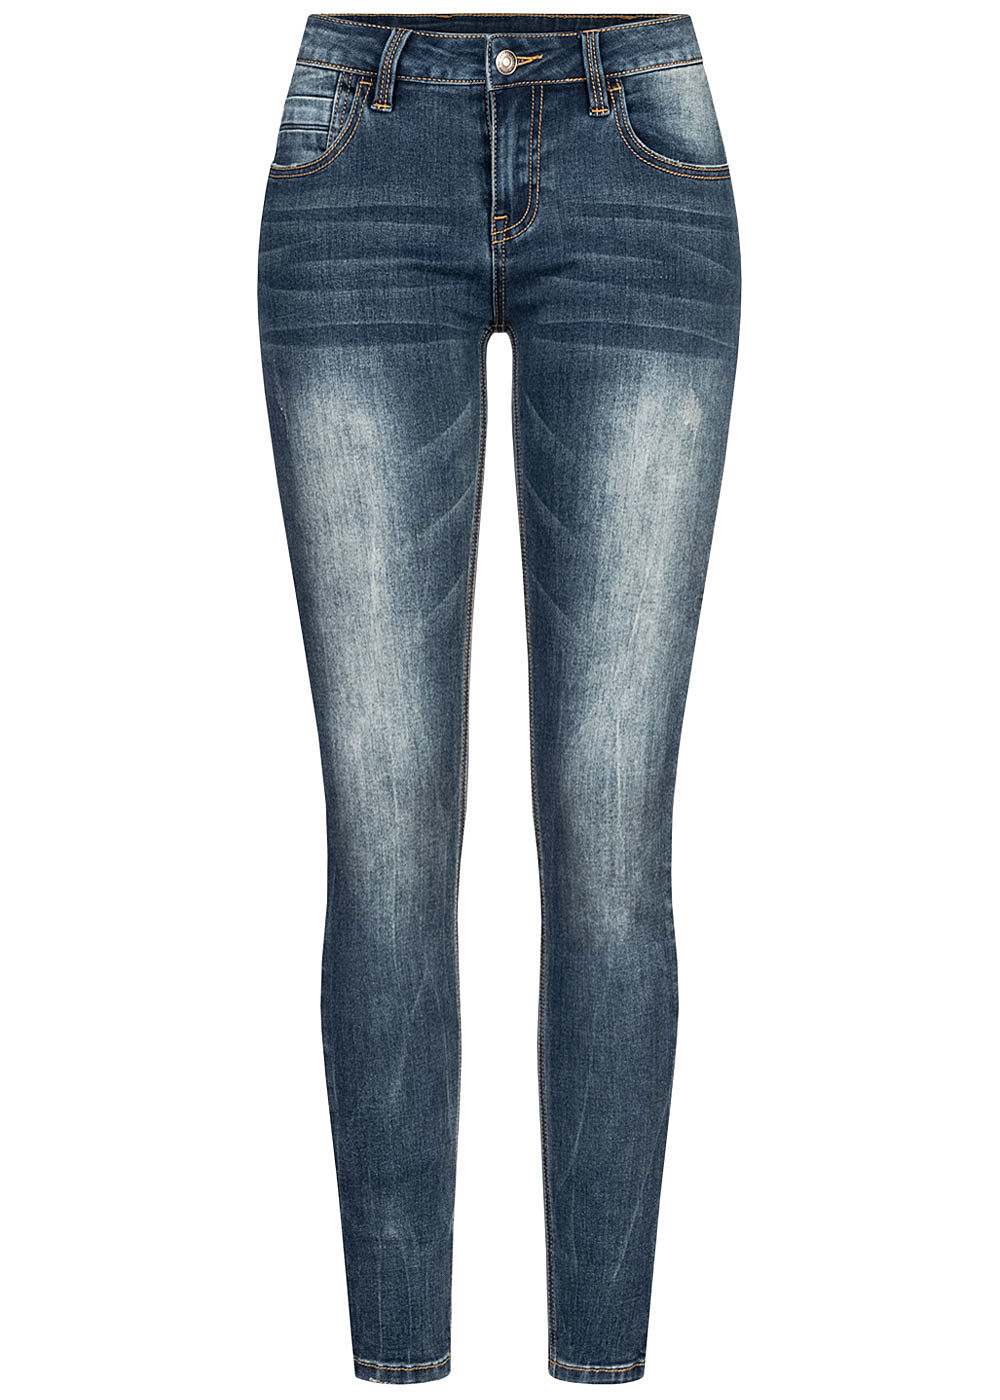 Seventyseven Lifestyle Damen Skinny Jeans Hose 5-Pockets Regular Waist med. blau denim - Art.-Nr.: 20117003